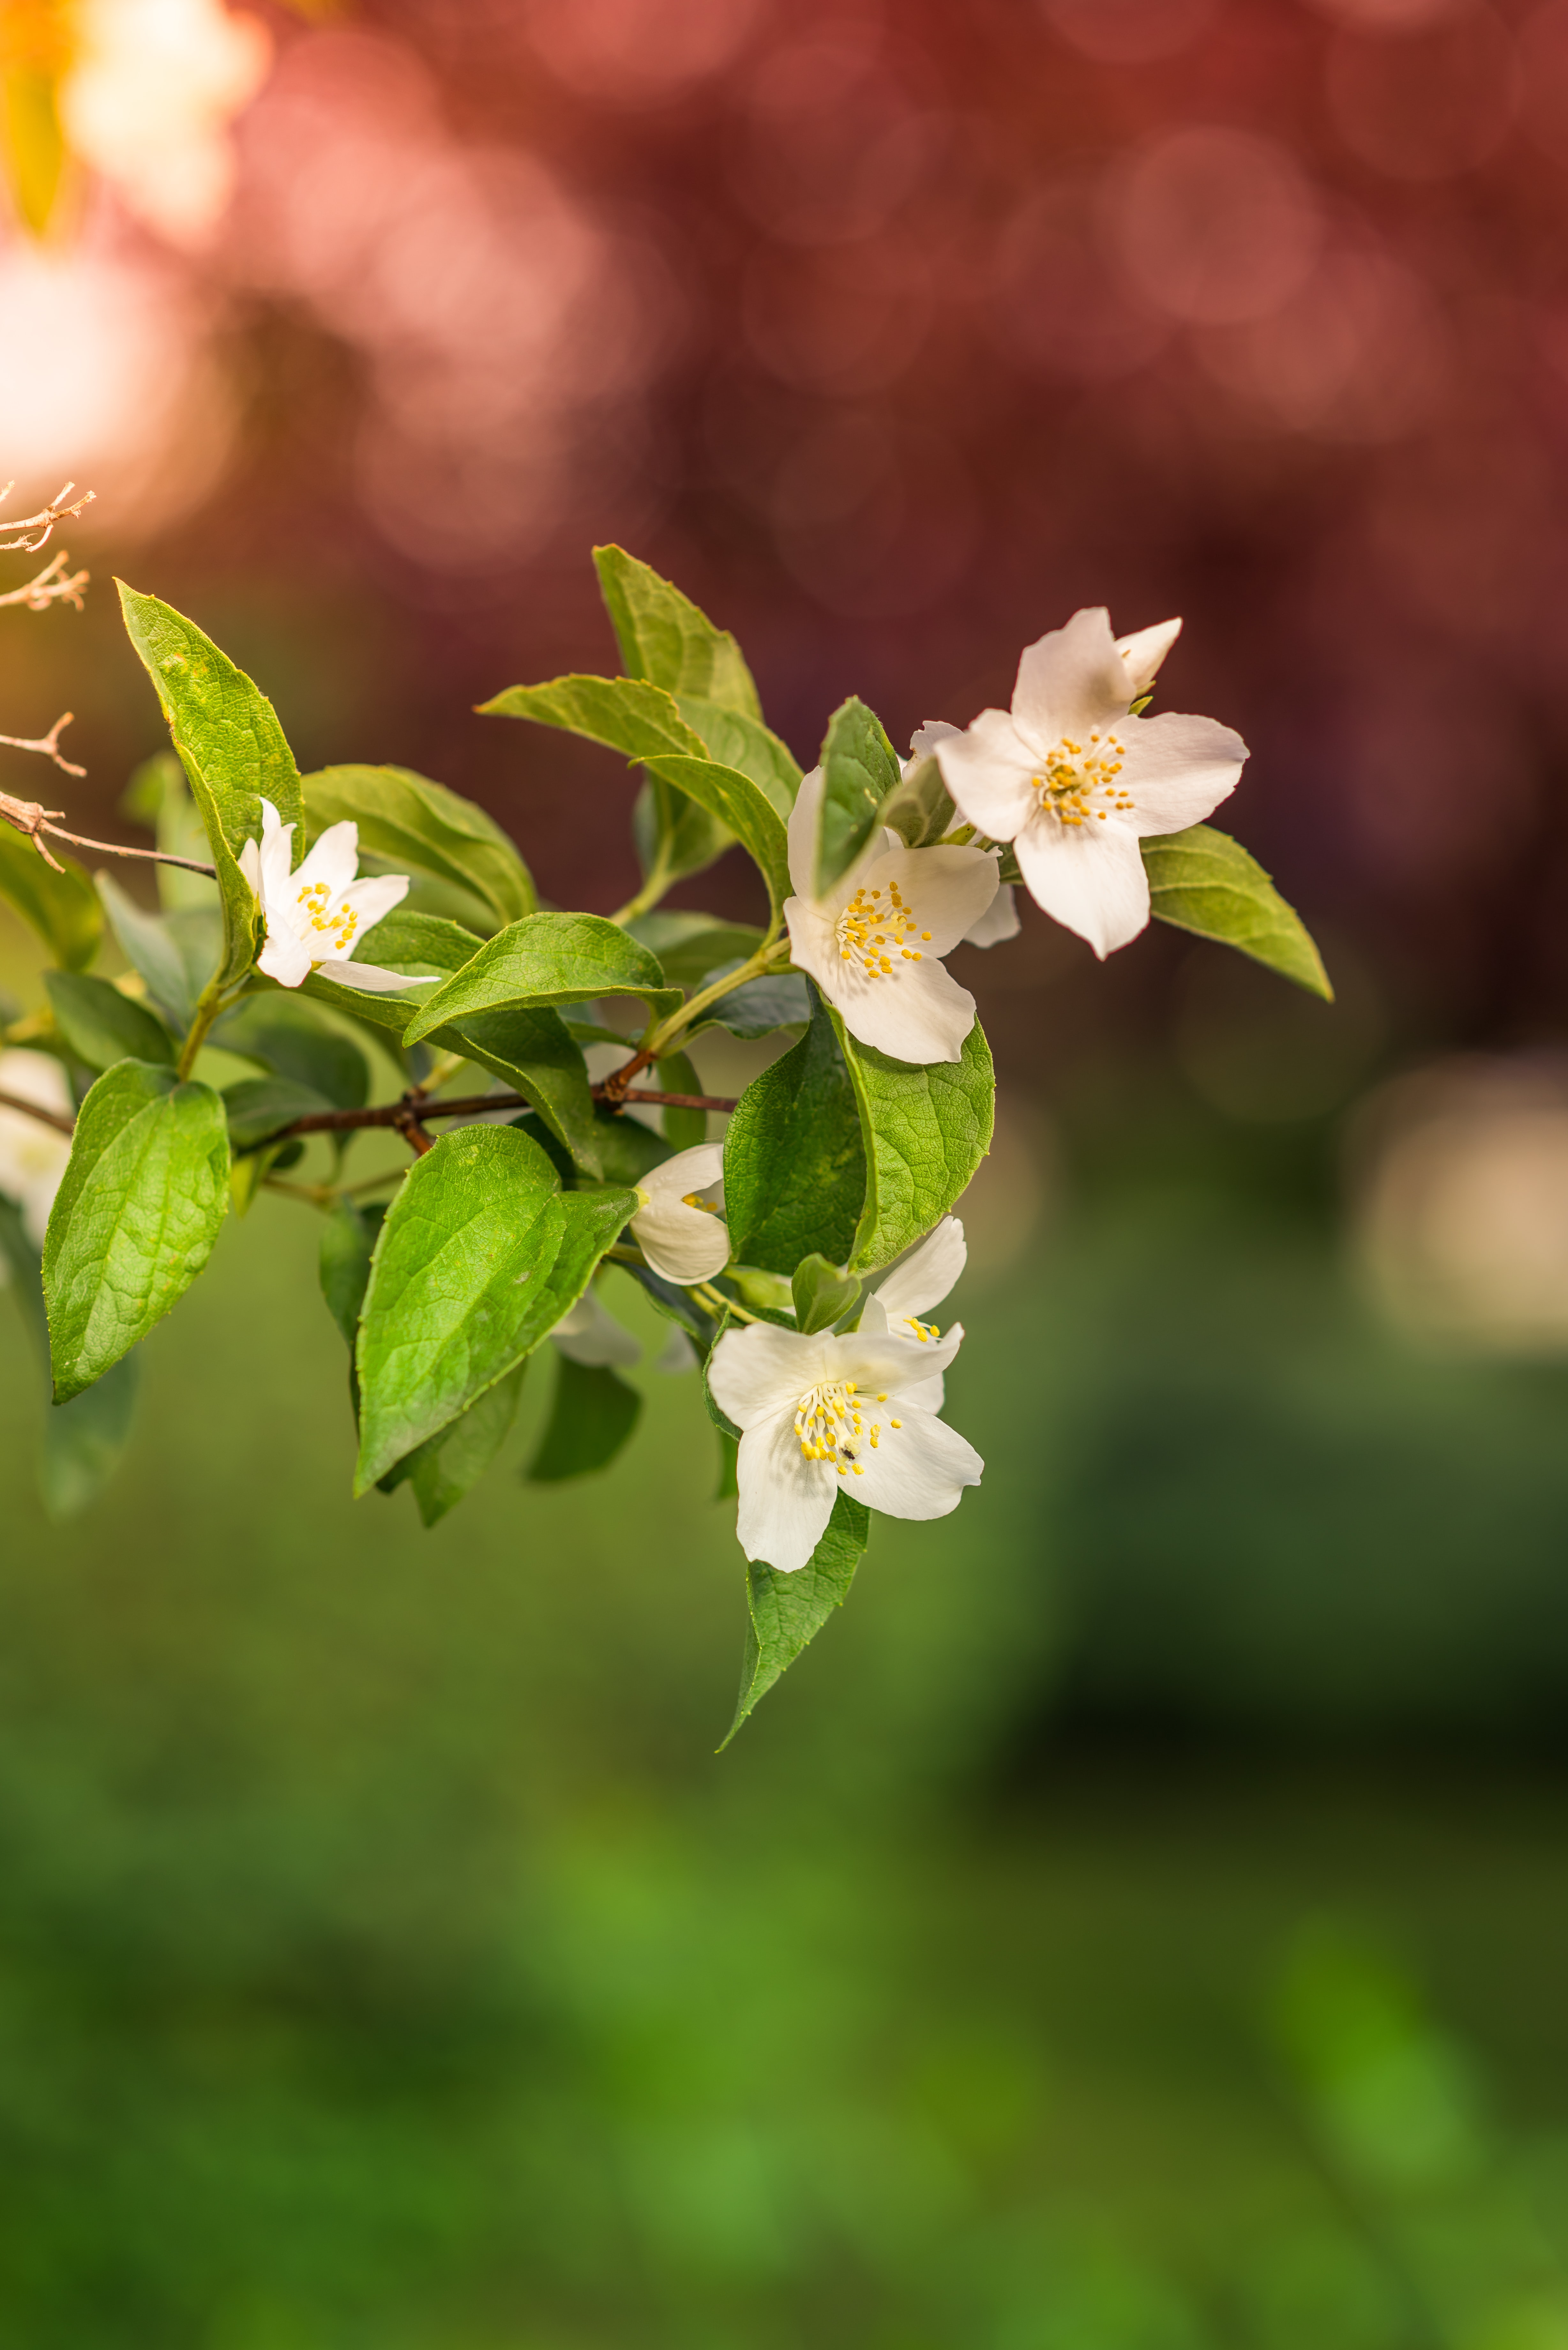 White blossom on a branch with bokeh effect in the red and green background